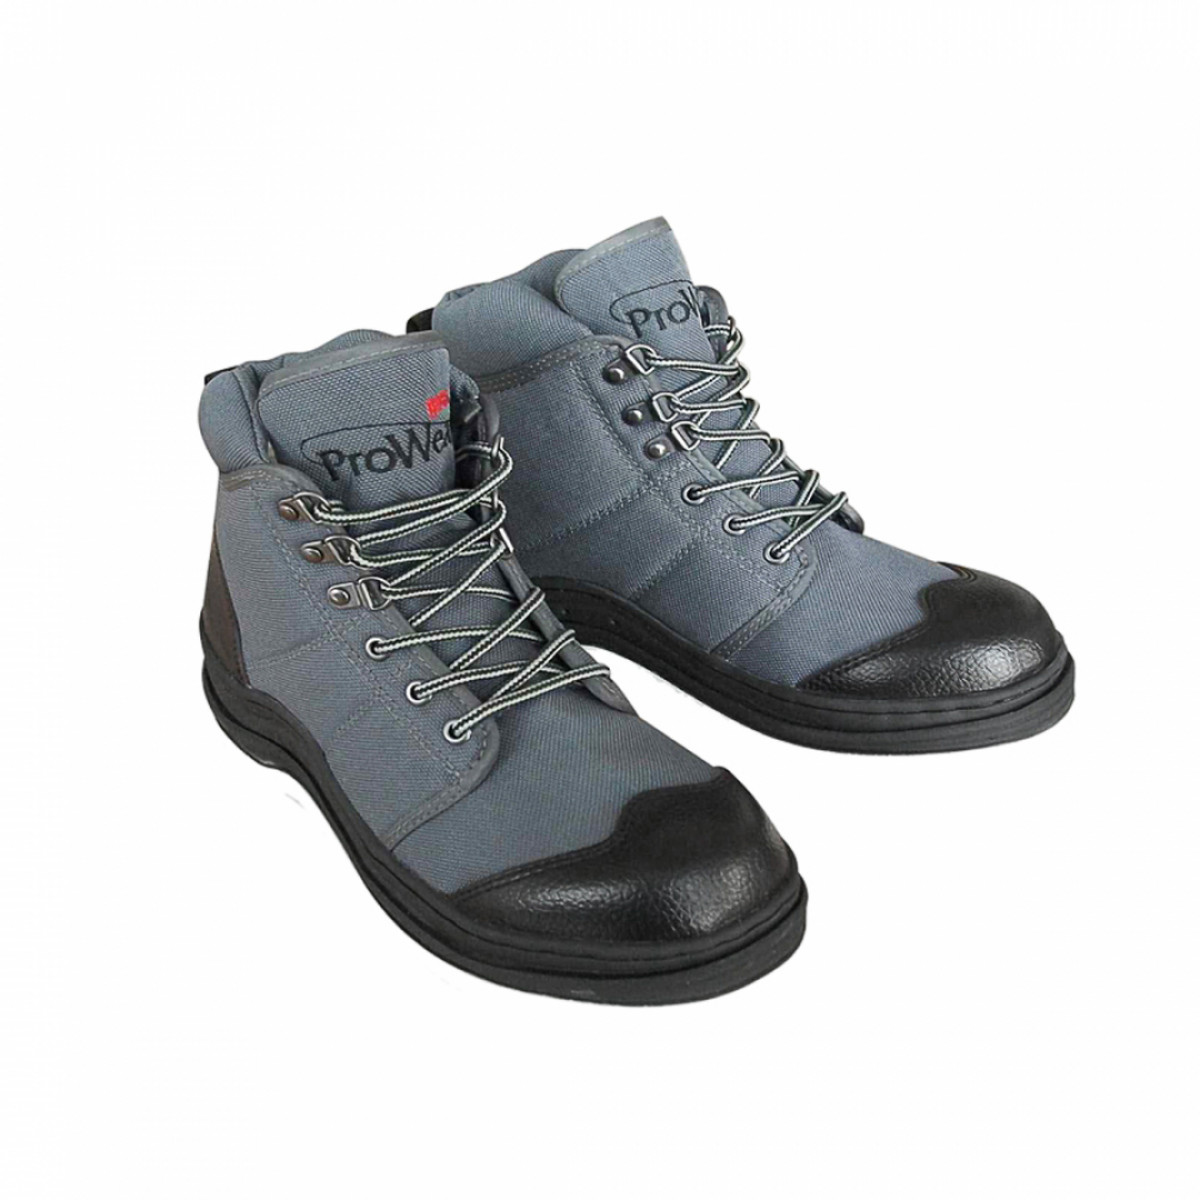 Prowear X-Edition Wading Shoes